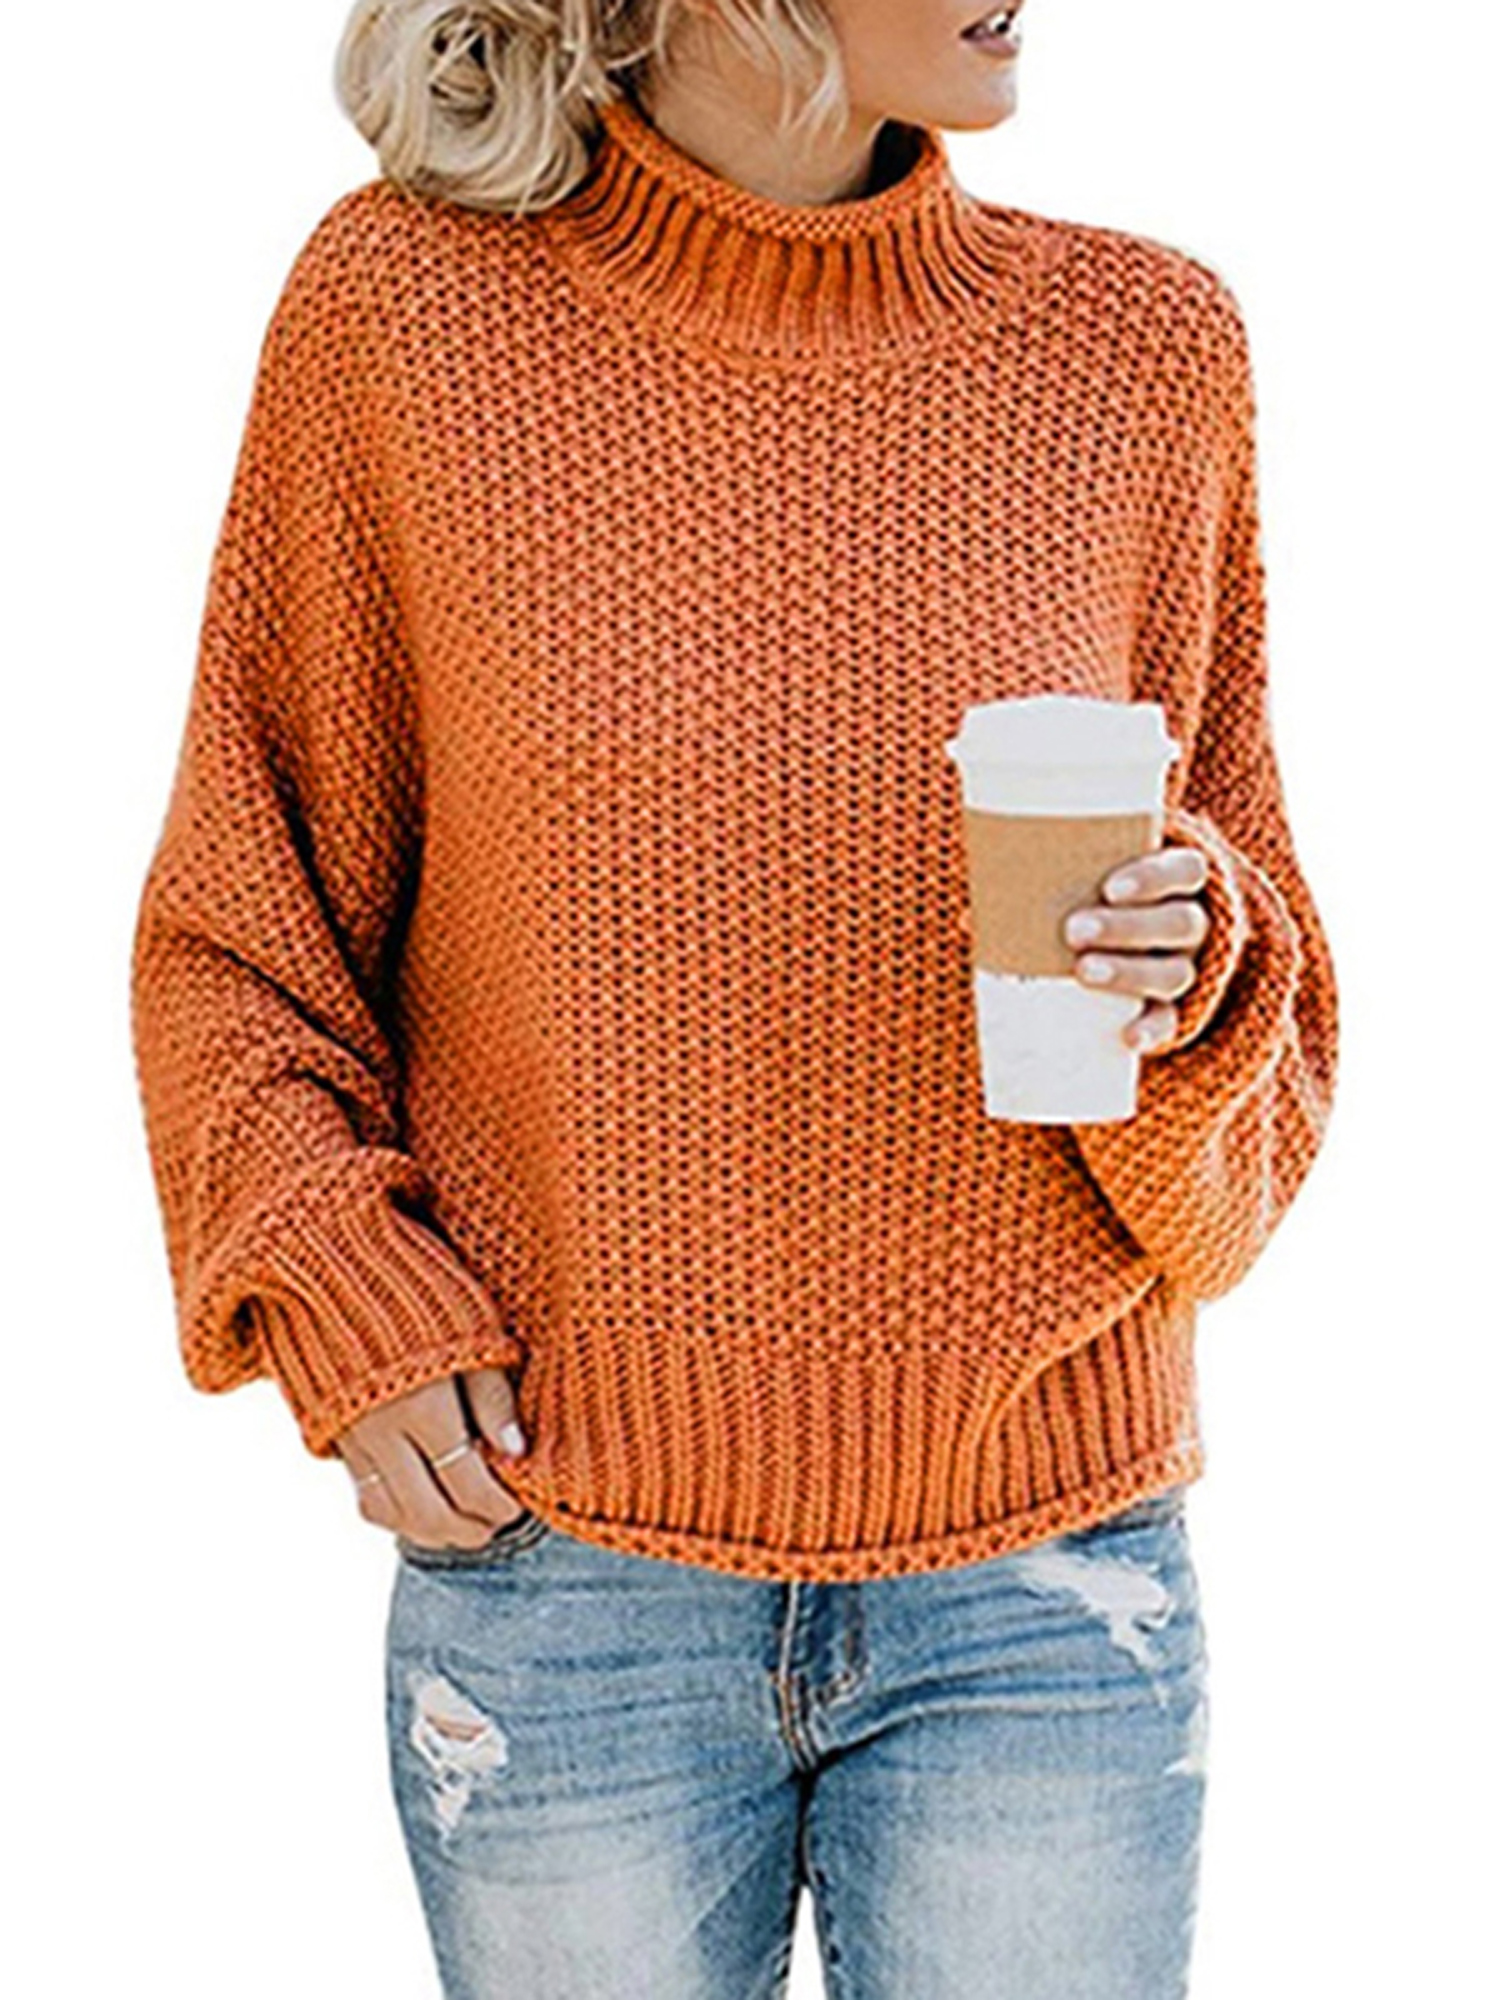 Aworth Sweaters Warm Pullover Women Knitted Sweater V-Neck Long Sleeve Loose Sweater Knitted